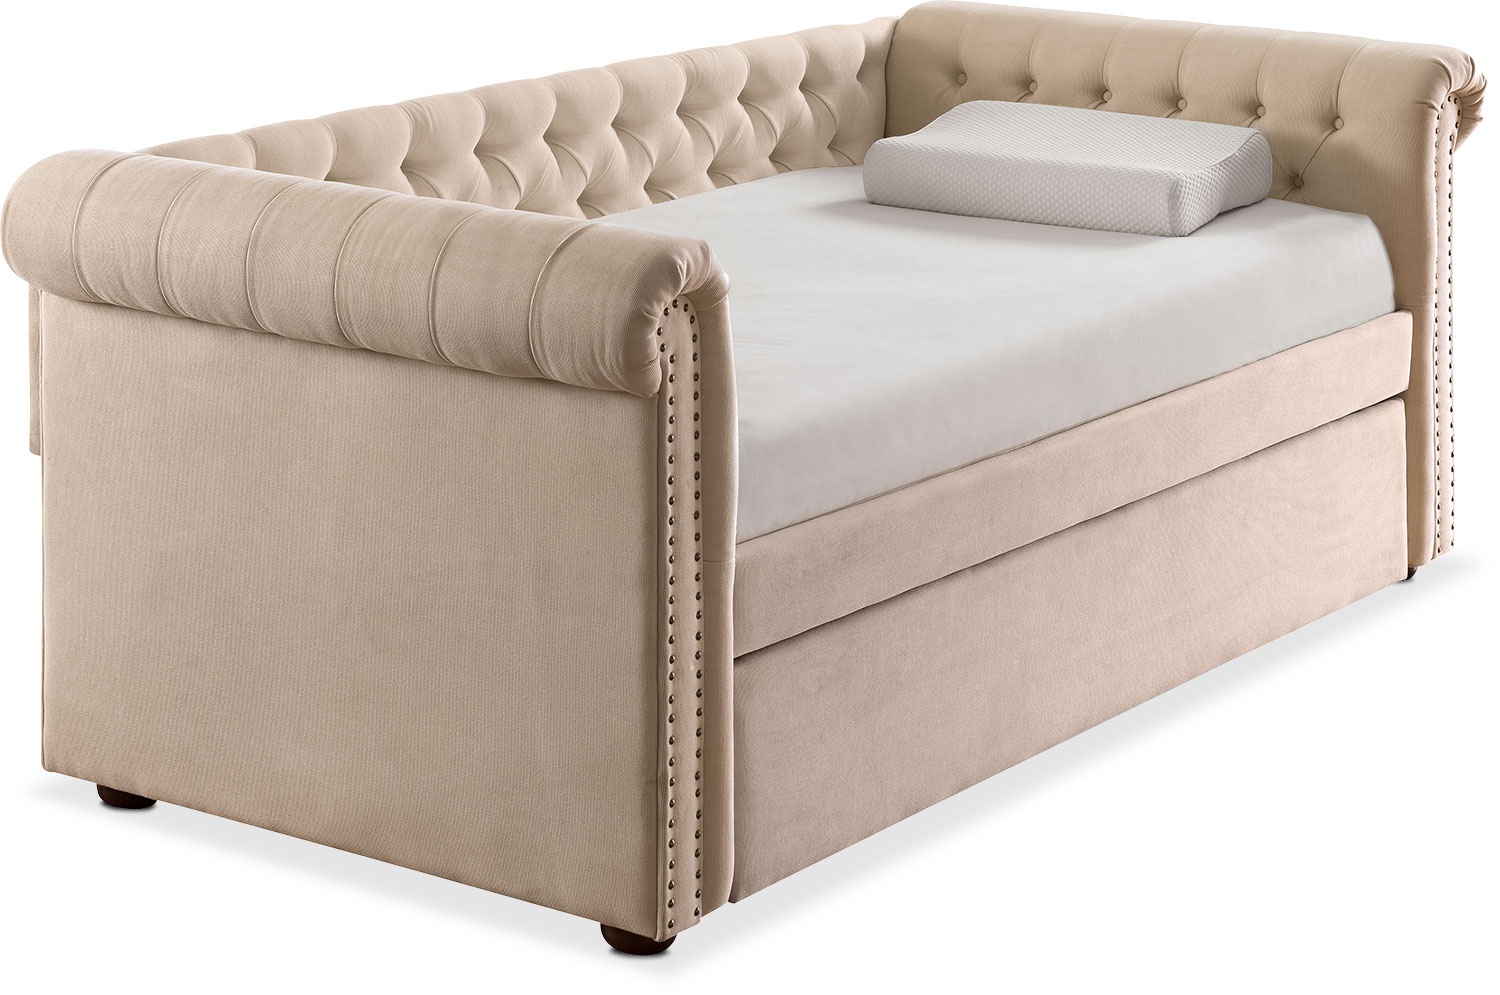 Kids Furniture   Shelton Twin Upholstered Daybed With Trundle   Ivory